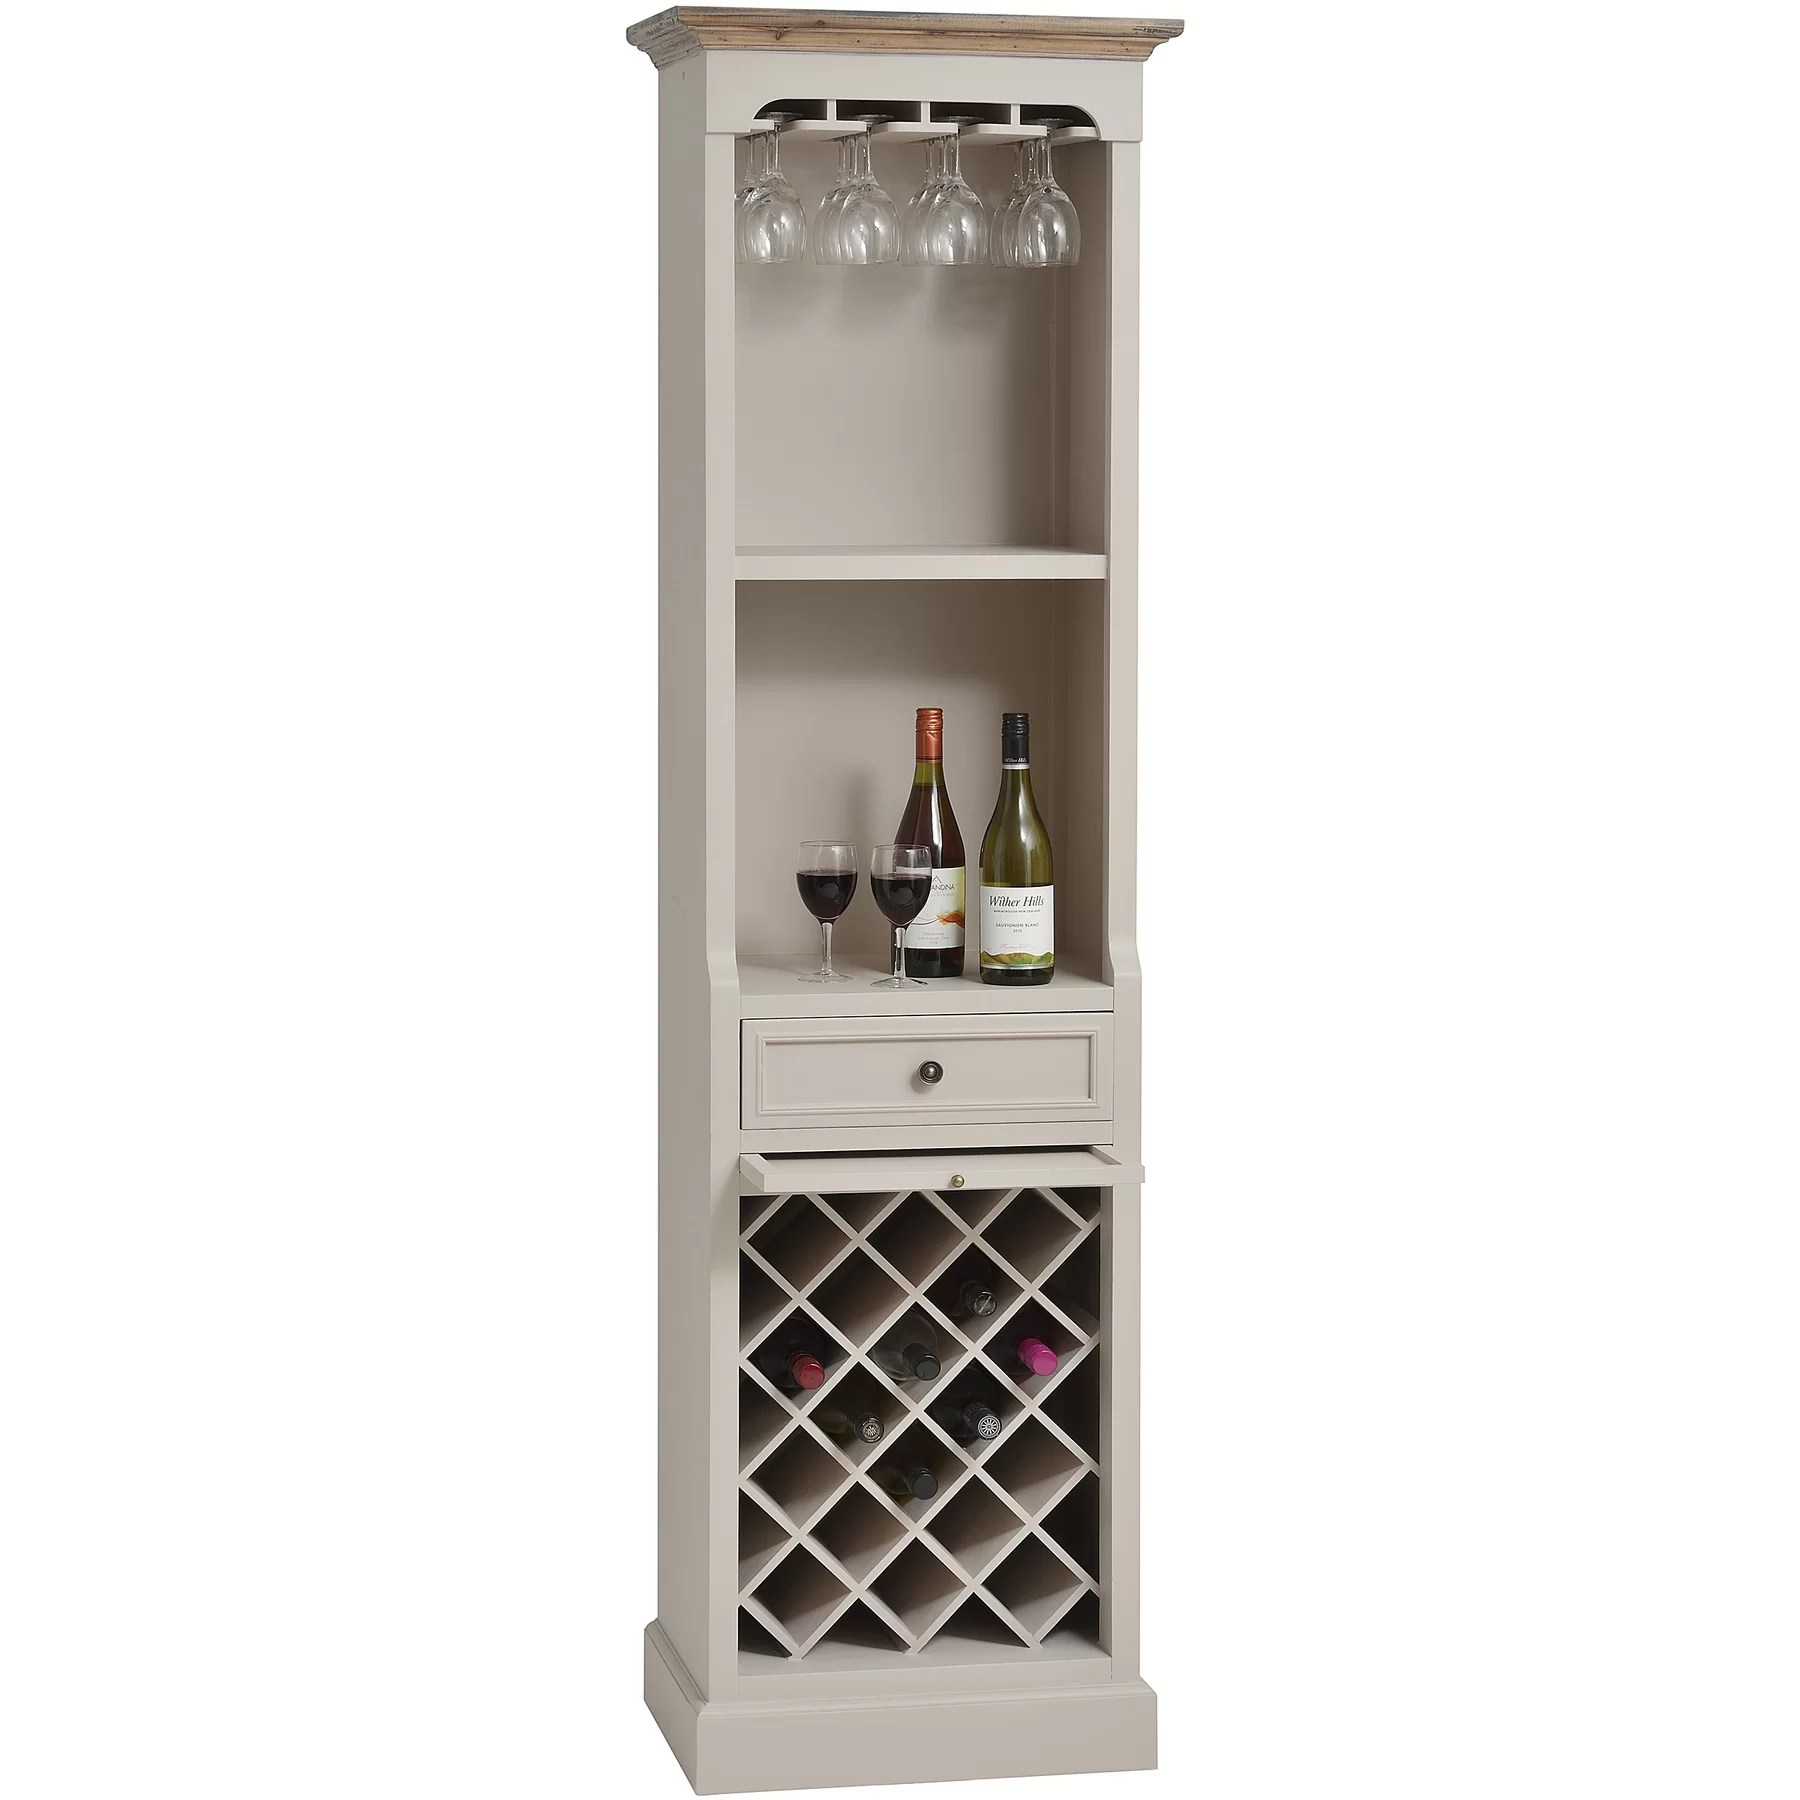 In Floor Wine Storage Hill Interiors Studley 12 Bottle Floor Wine Rack Wayfair Uk